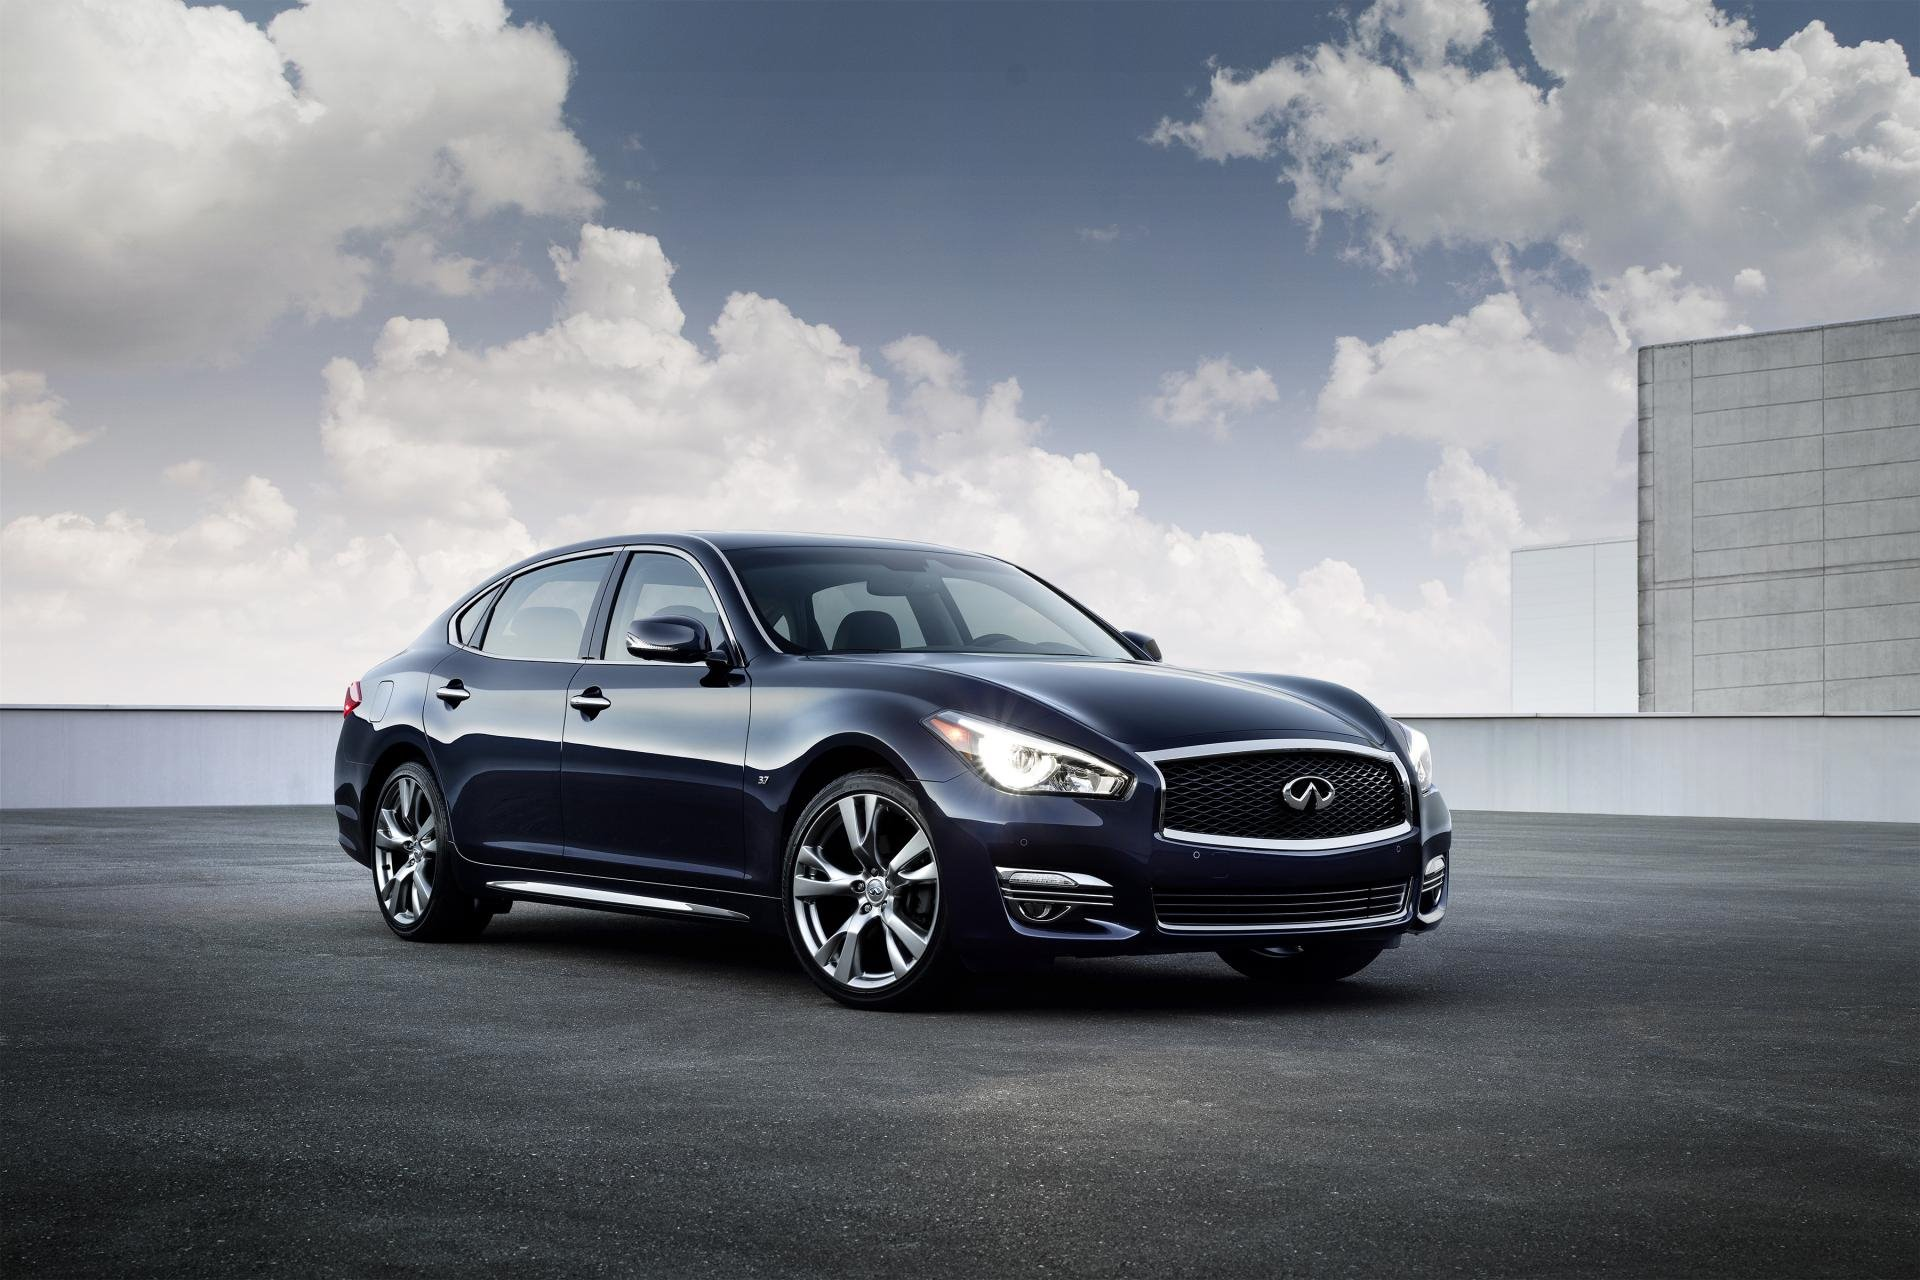 New 2019 INFINITI-Q70L 3.7 Luxe Q70L 3.7 Luxe for sale $53,950 at M and V Leasing in Brooklyn NY 11223 1